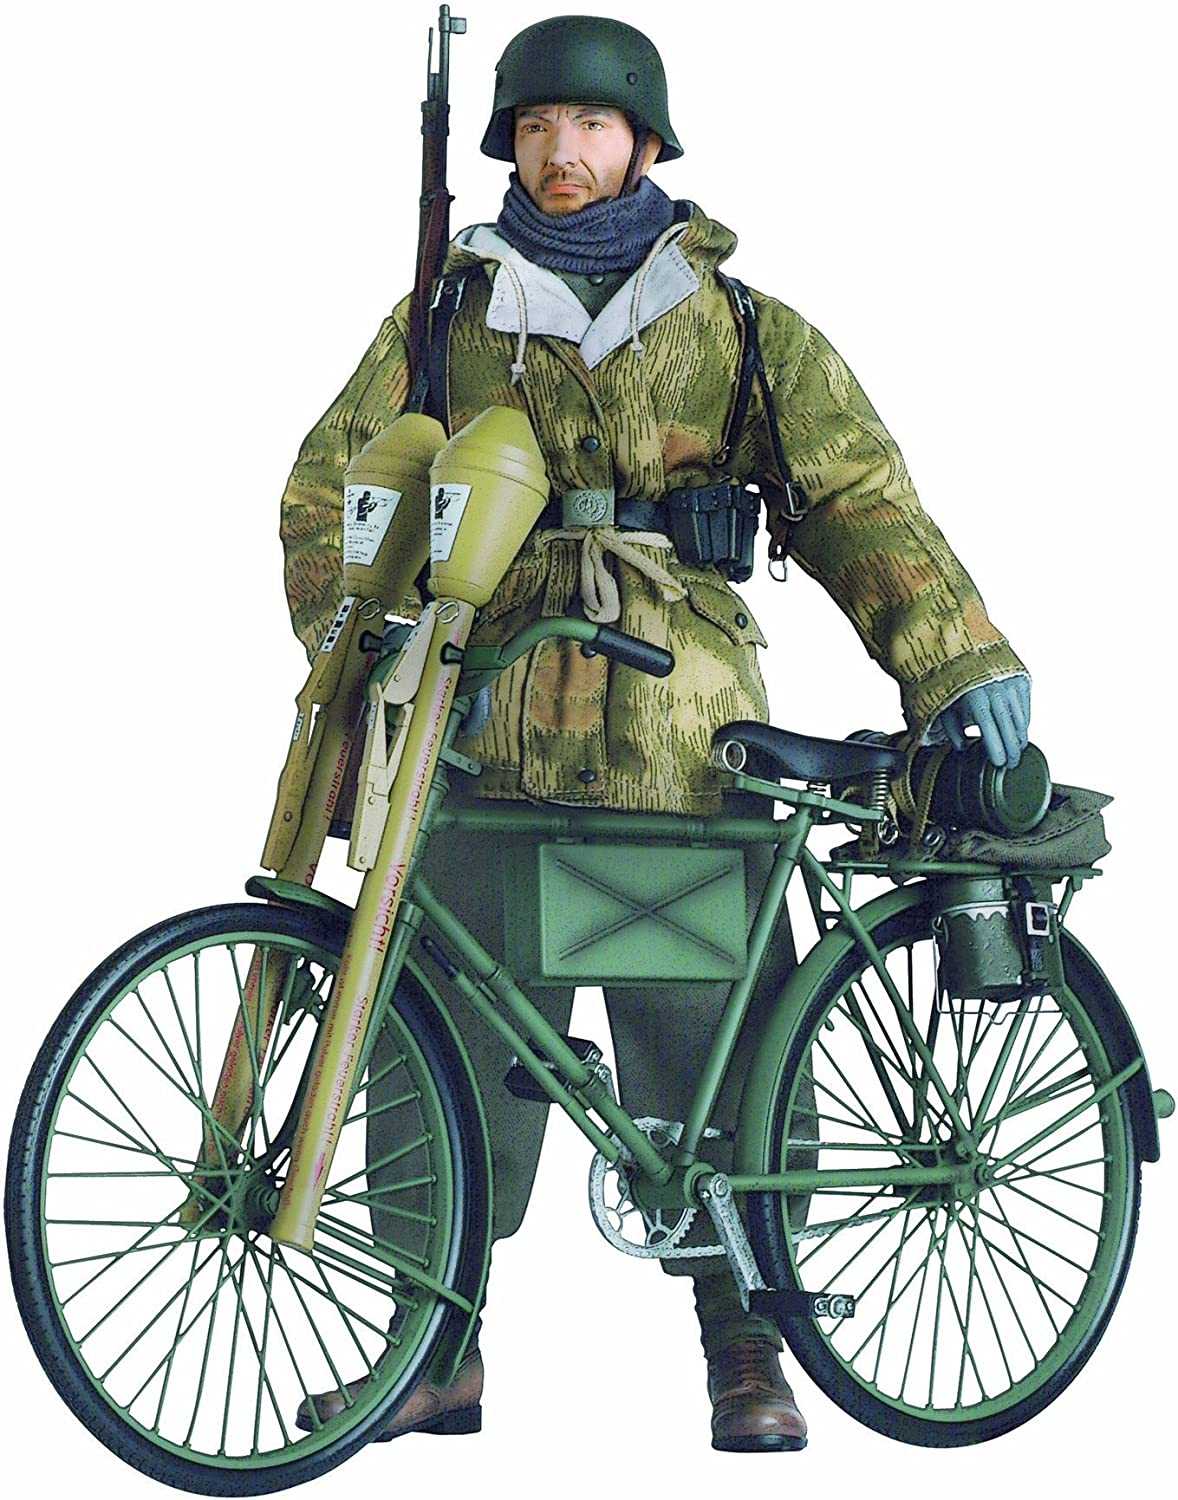 1 6 German WWII Bicycle Kit w Panzerfaust 60